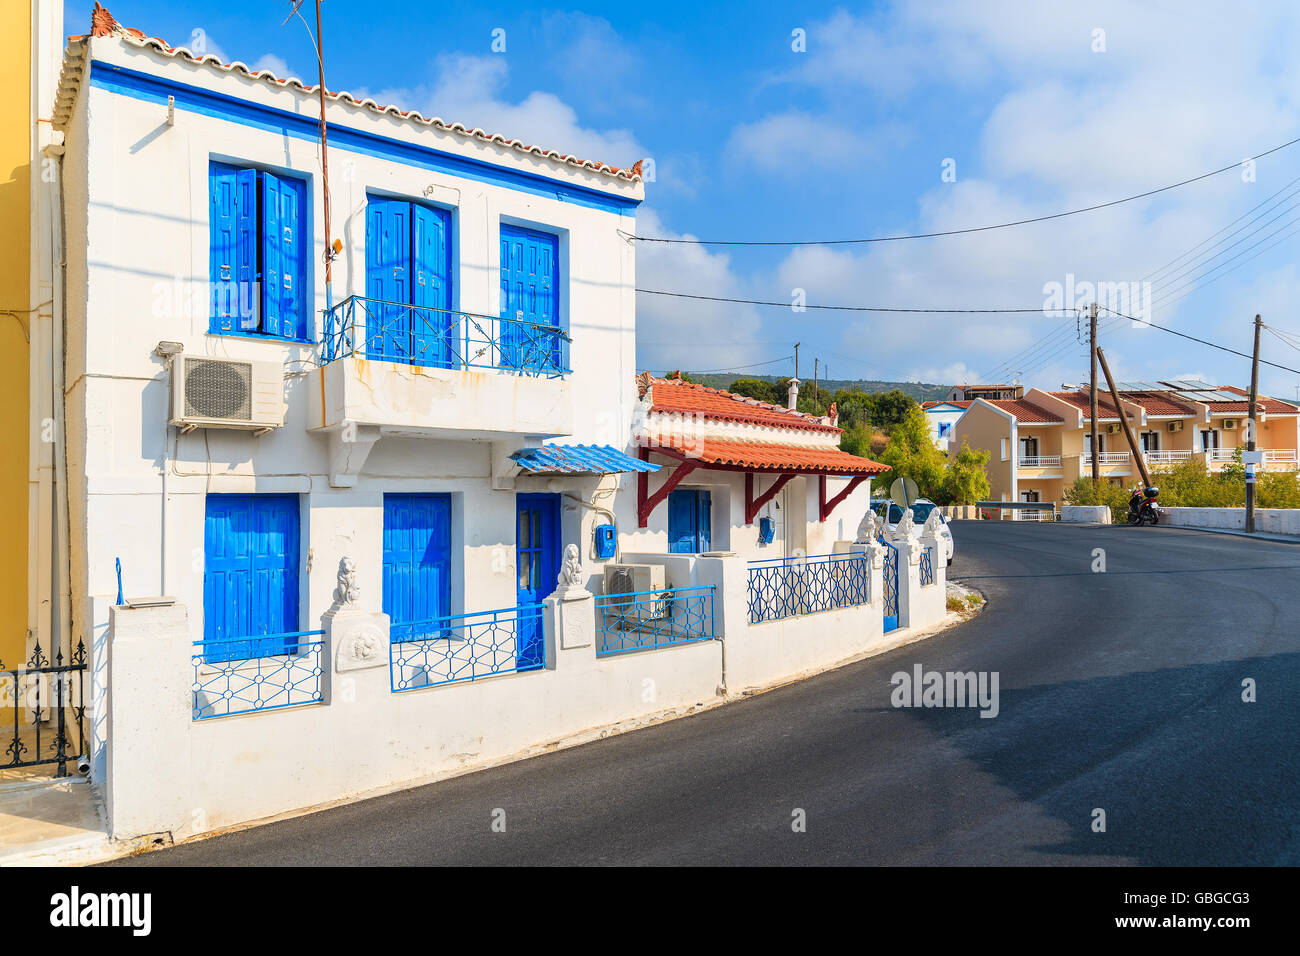 Greek Style House typical greek style houses on street of pythagorion town, samos